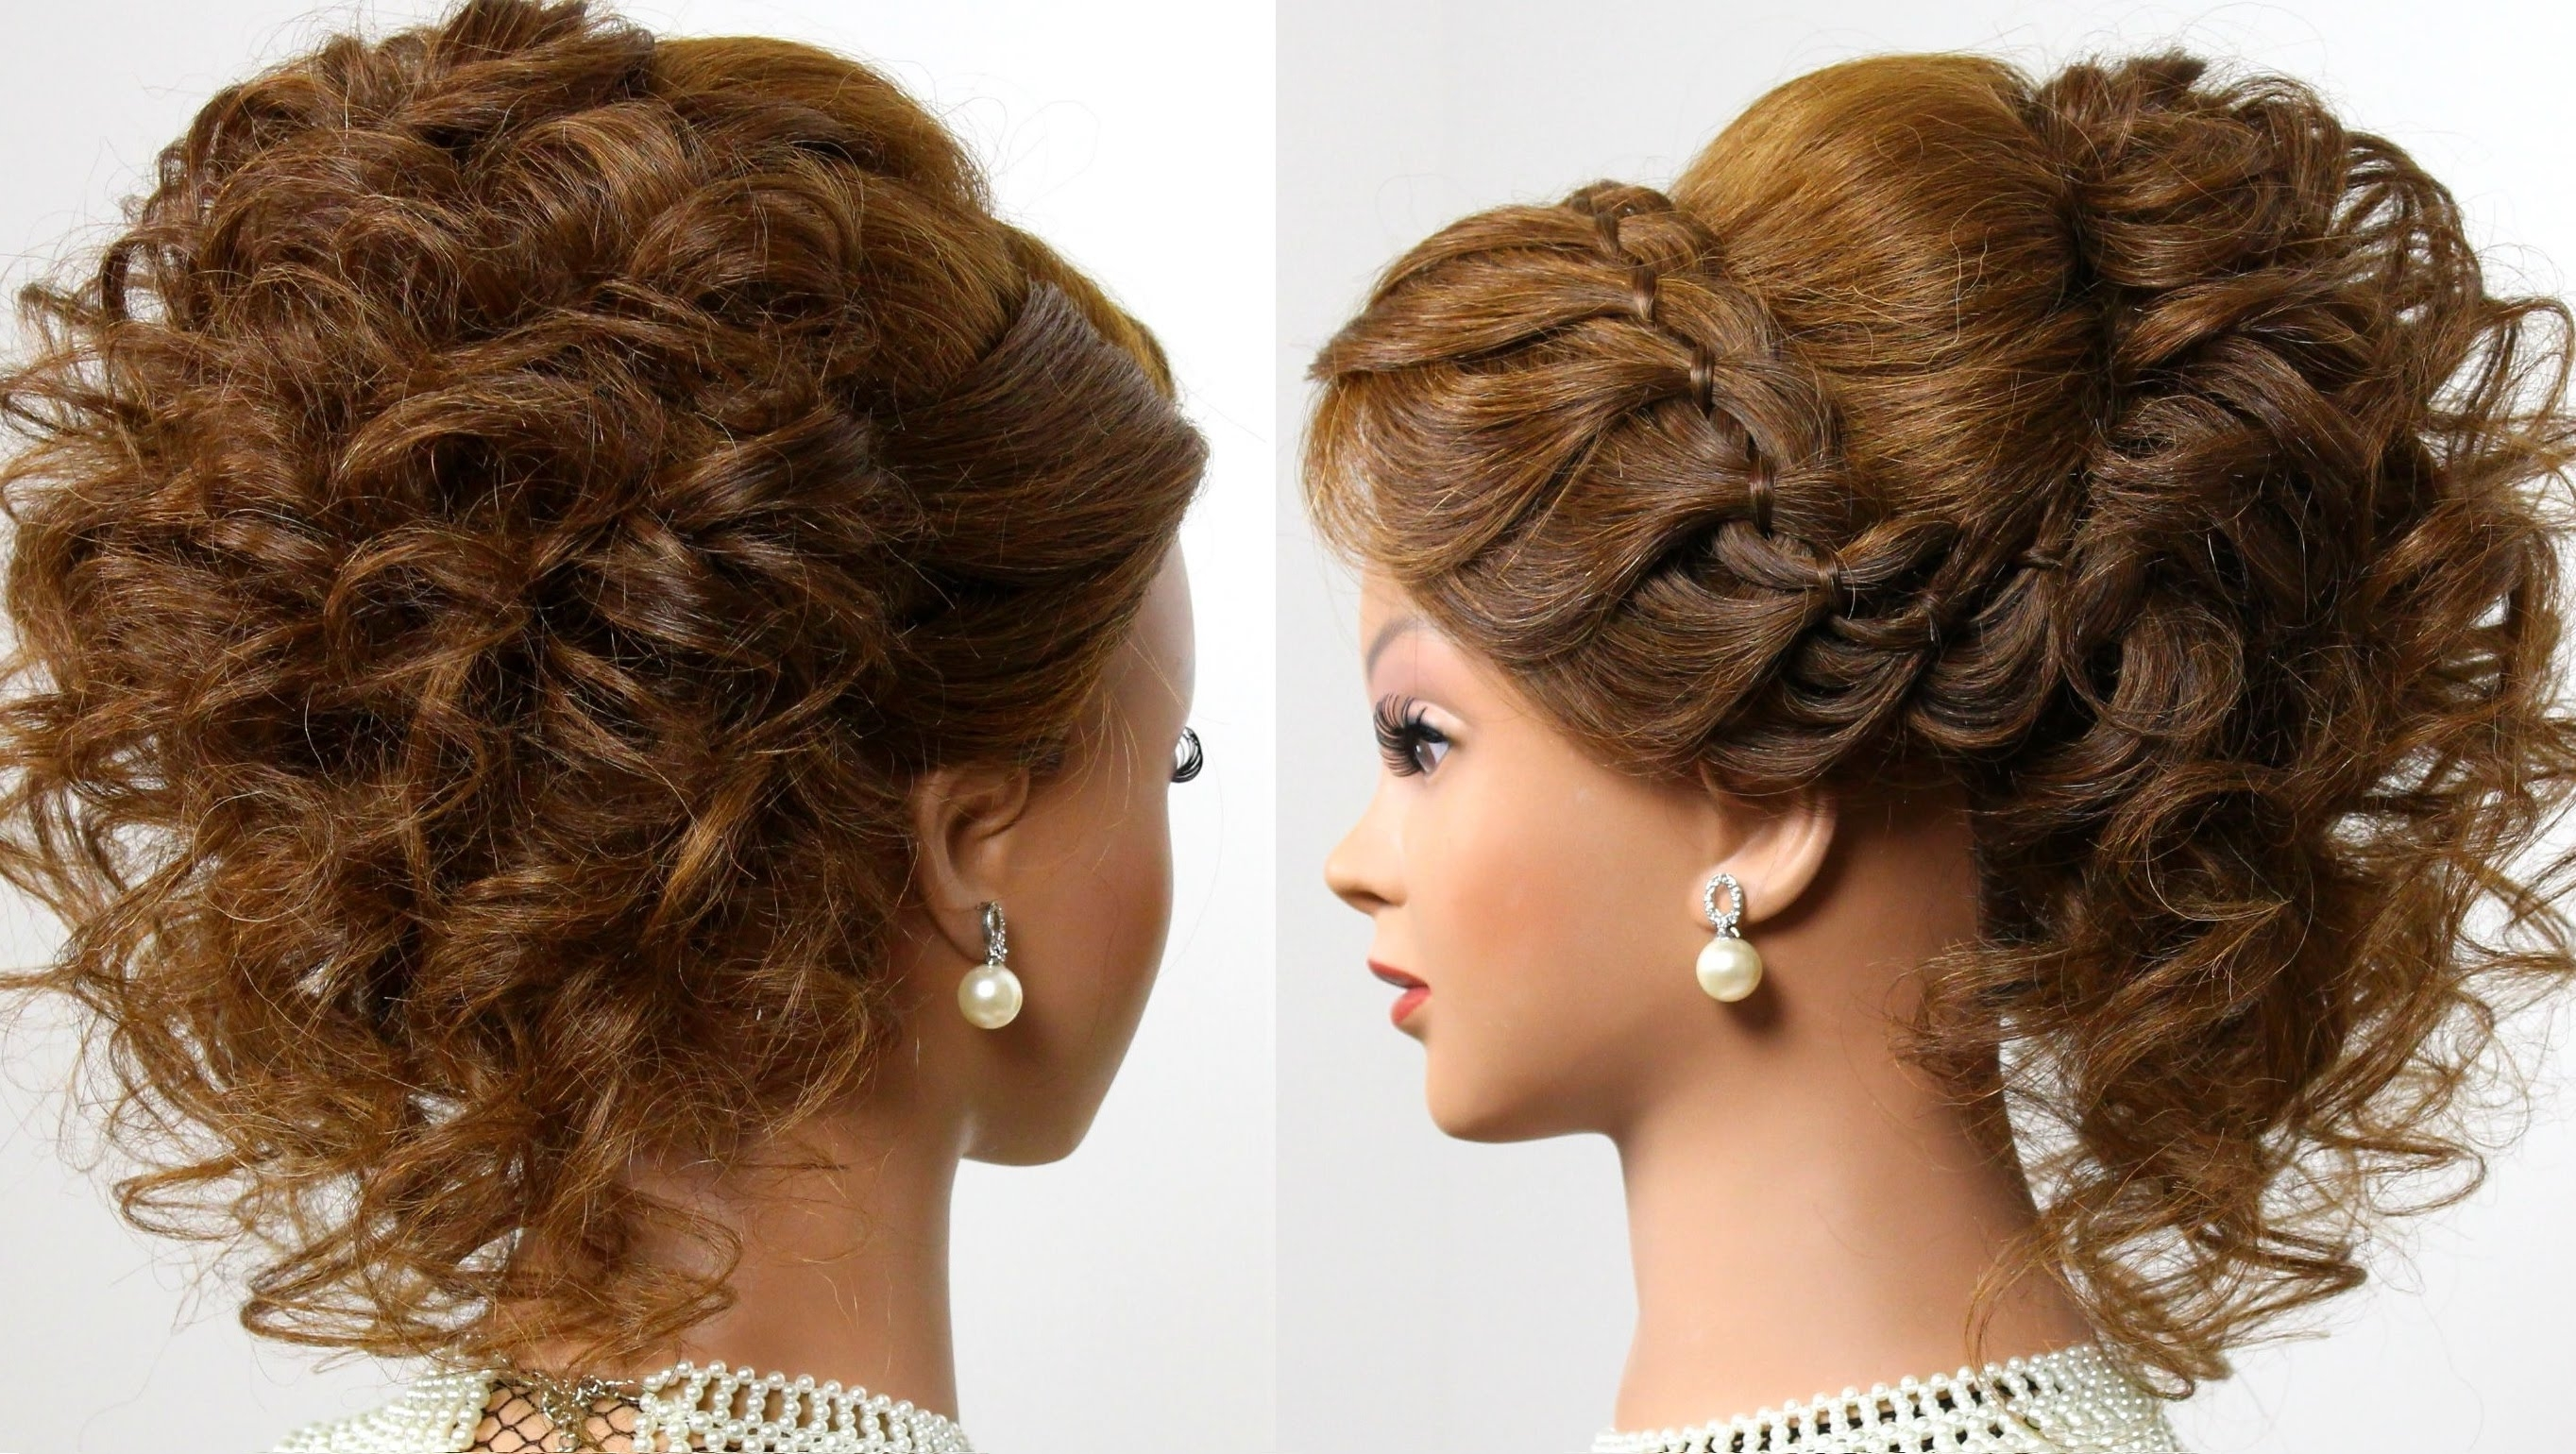 Curly Wedding Prom Hairstyle For Long Hair Sensational Romantic With Regard To Curly Updo Hairstyles For Medium Length Hair (View 3 of 15)